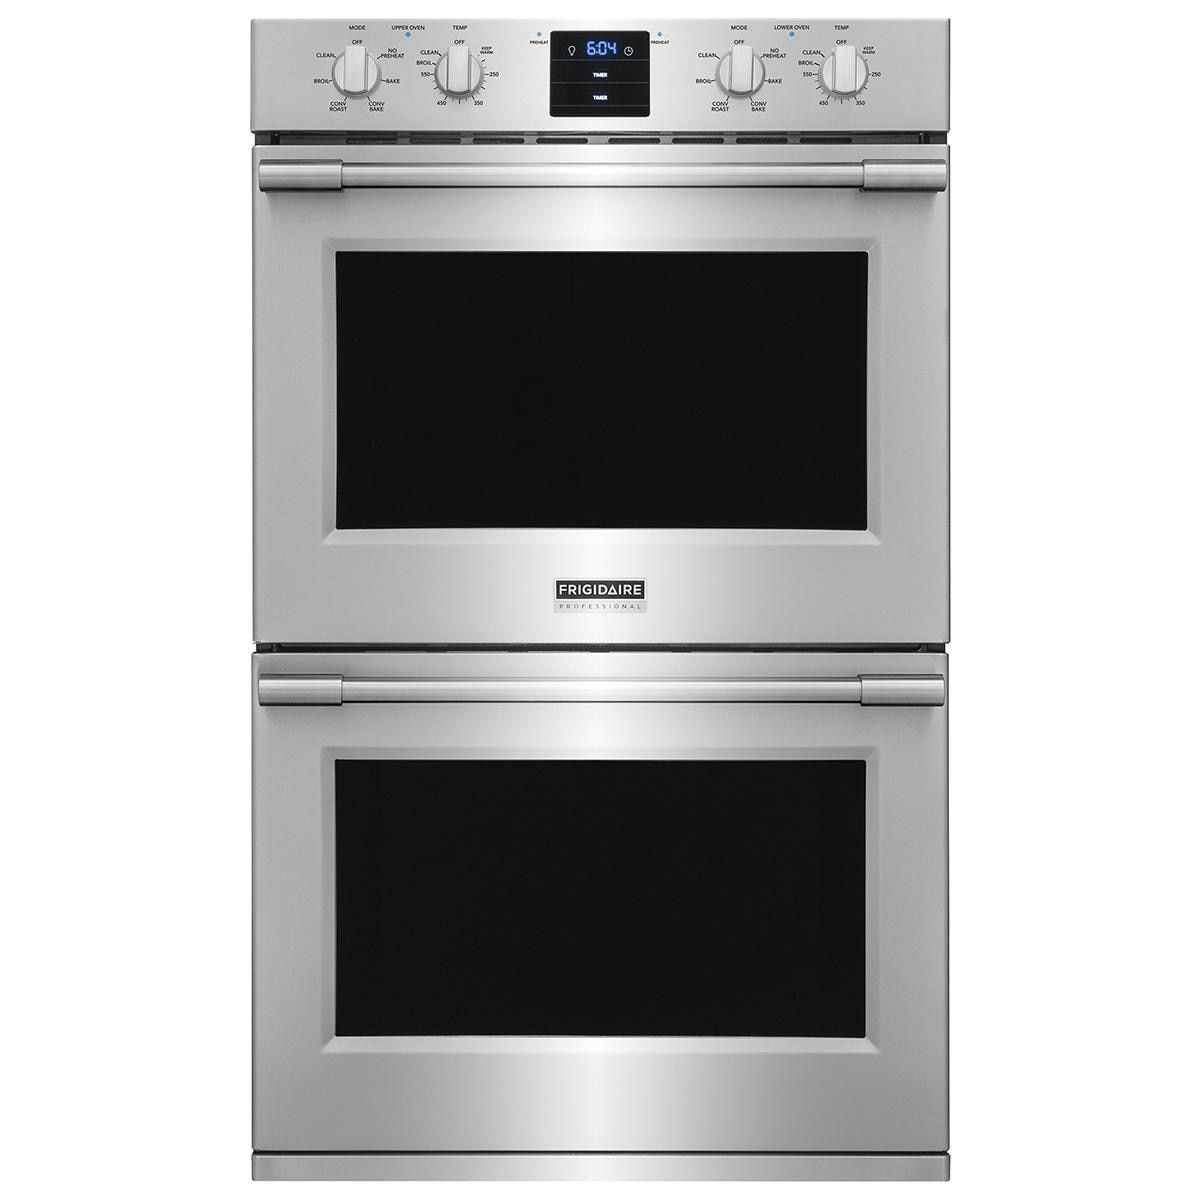 Frigidaire Professional 30 Electric Double Wall Oven With Convection In Stainless Steel Nebraska Wall Oven Double Electric Wall Oven Frigidaire Professional